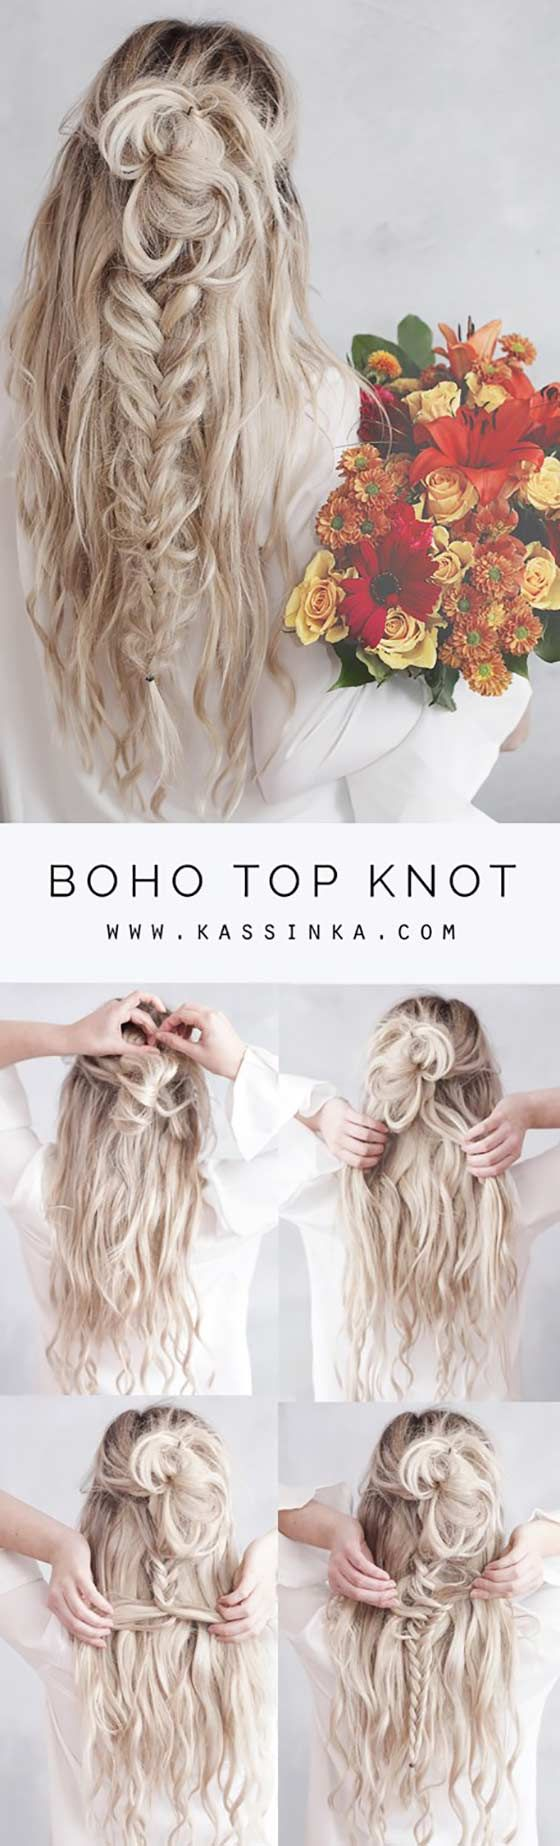 40 Braided Hairstyles For Long Hair | Love this boho top knot with a braid!